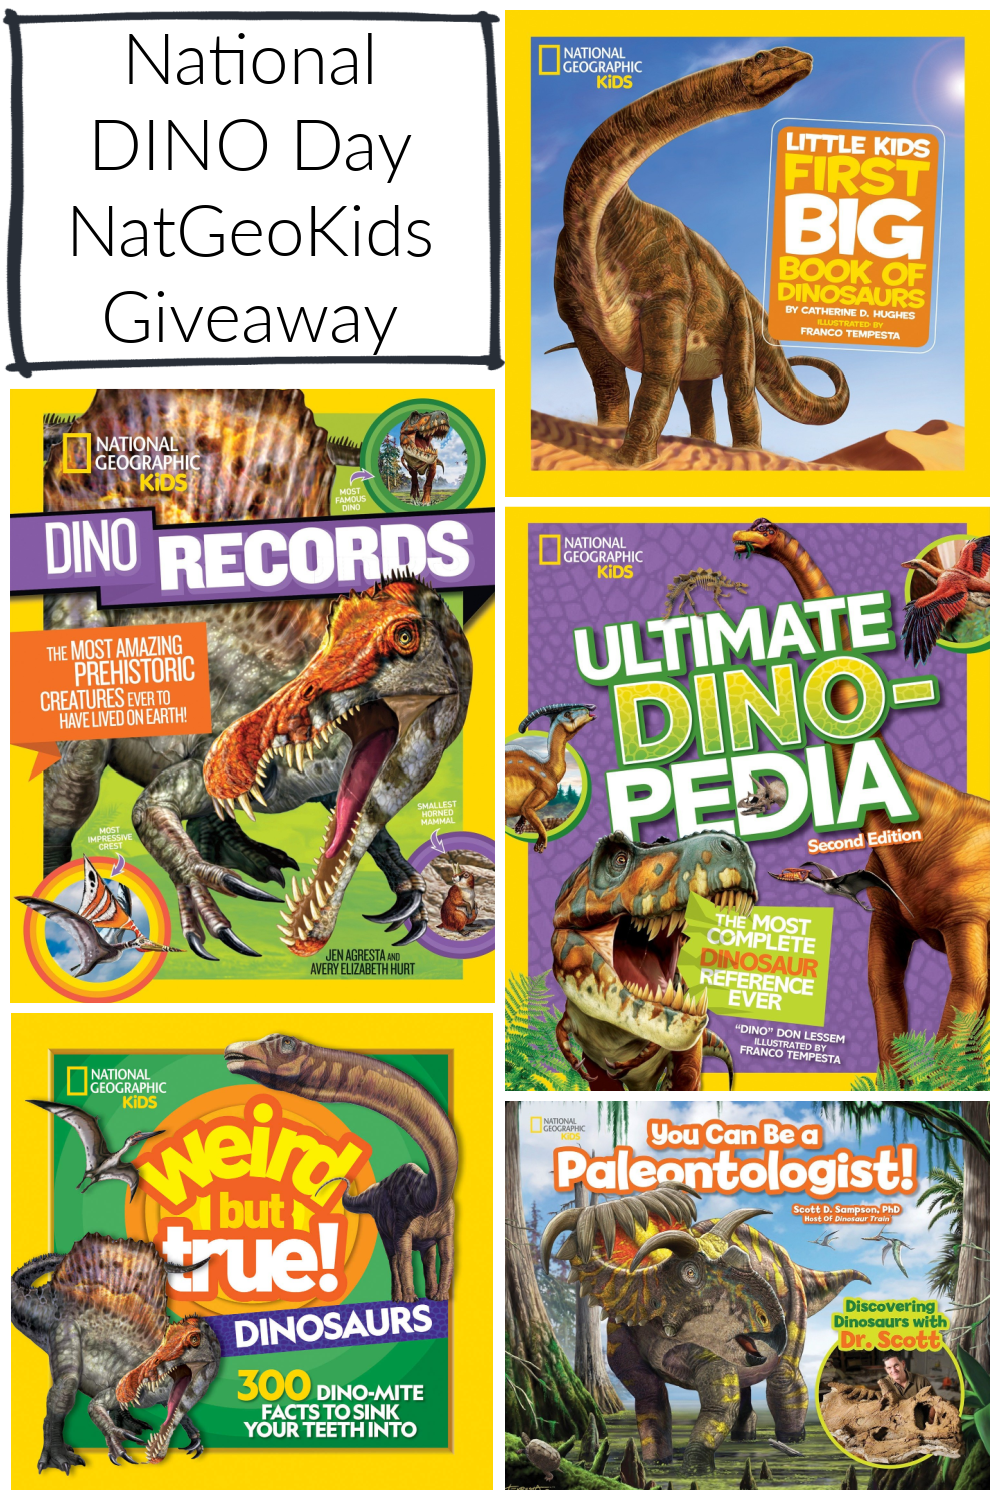 Celebrating National DINO Day with National Geographic Kids